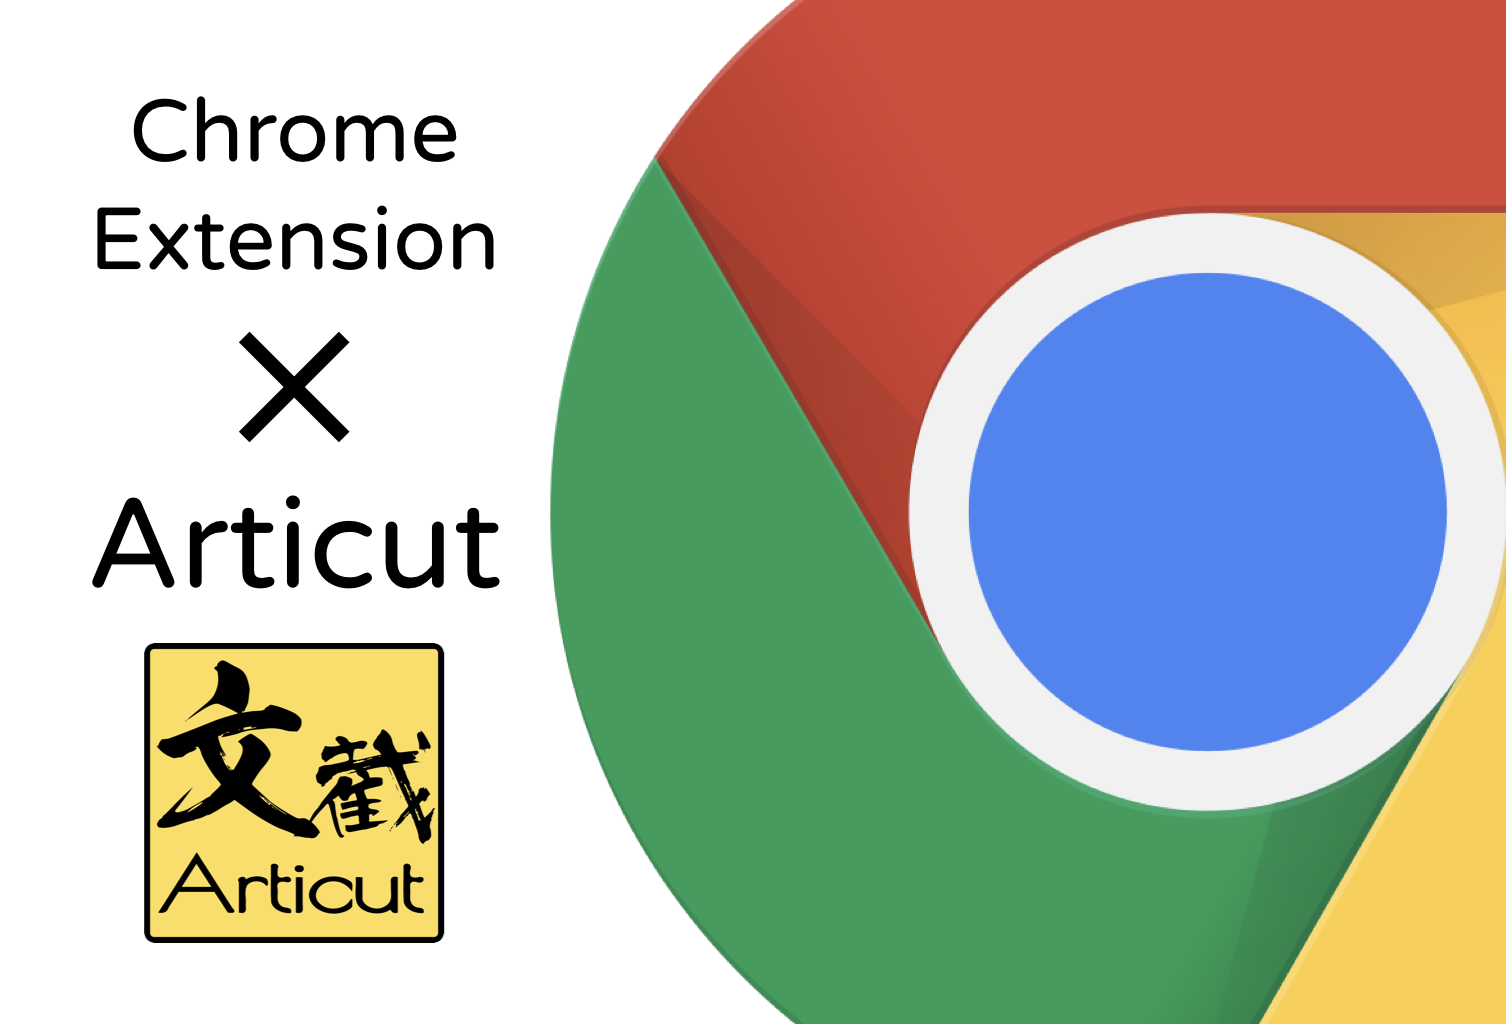 Articut Chrome Extension:馬上體驗 Articut 詞性標記的強大。